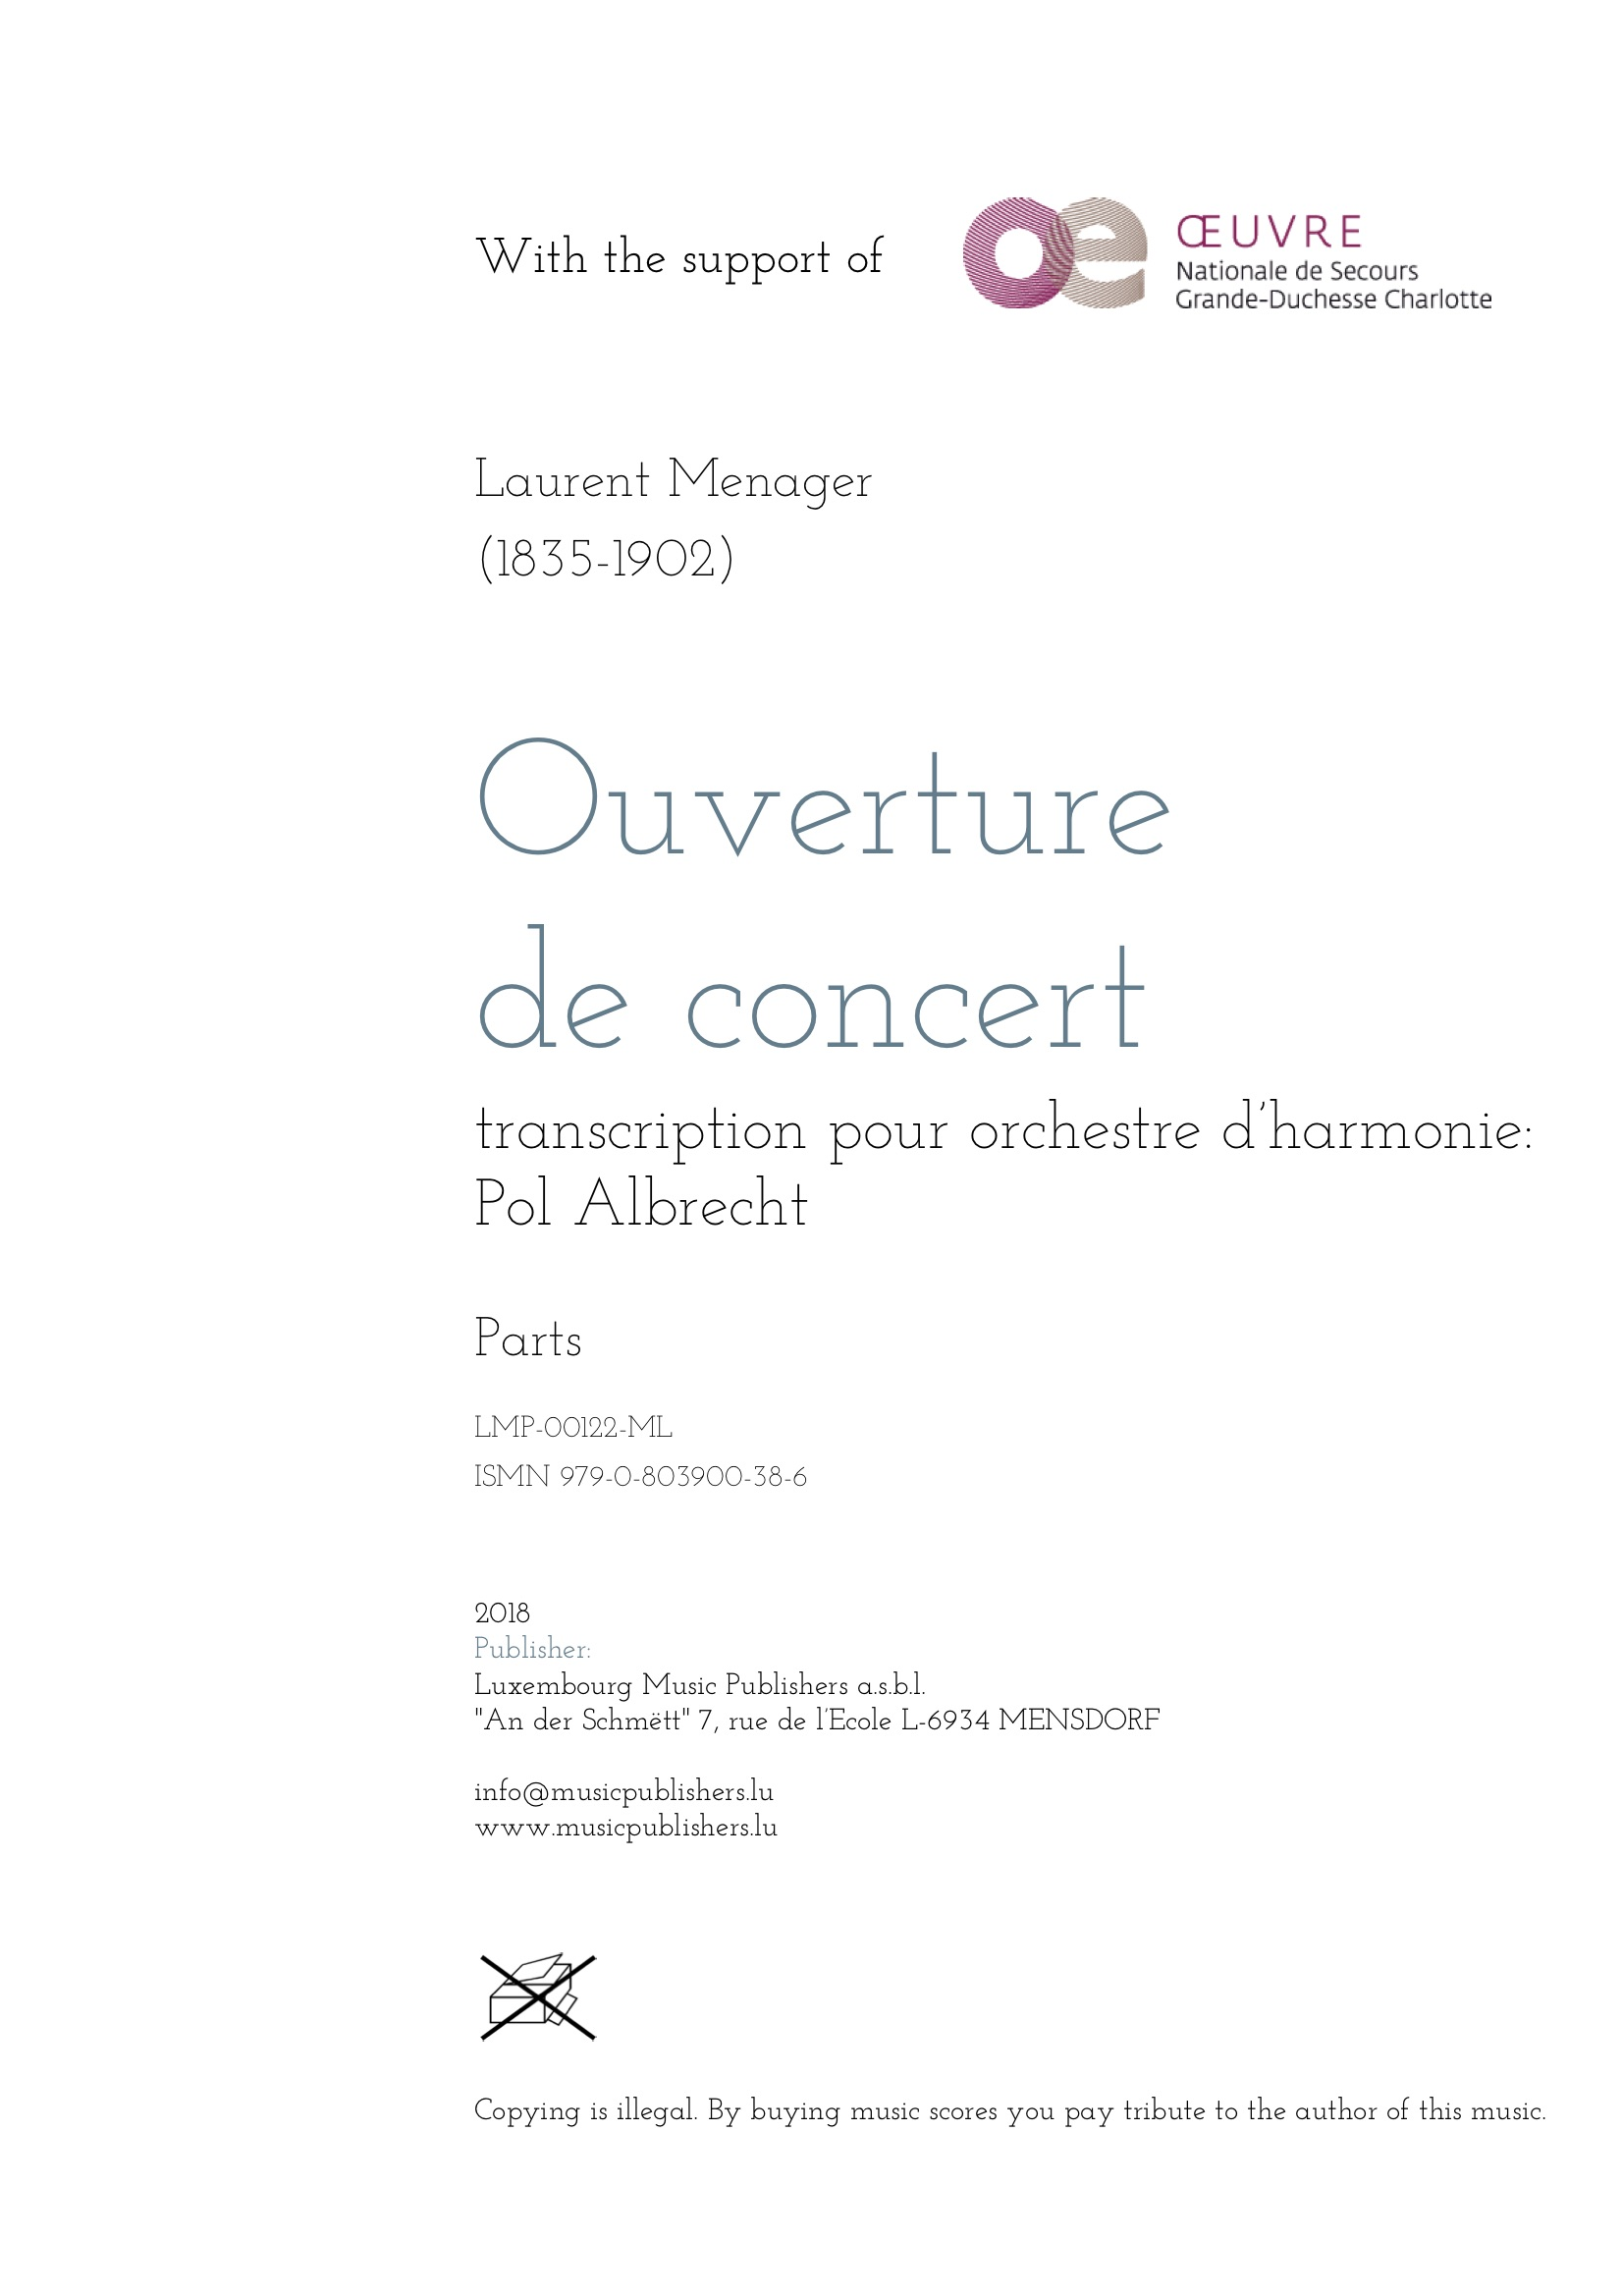 Ouverture de concert. Sheet Music by Laurent Menager, composer. Transcription by Pol Albrecht. Music for wind orchestra. Music for symphonic wind orchestra/band. Parts.